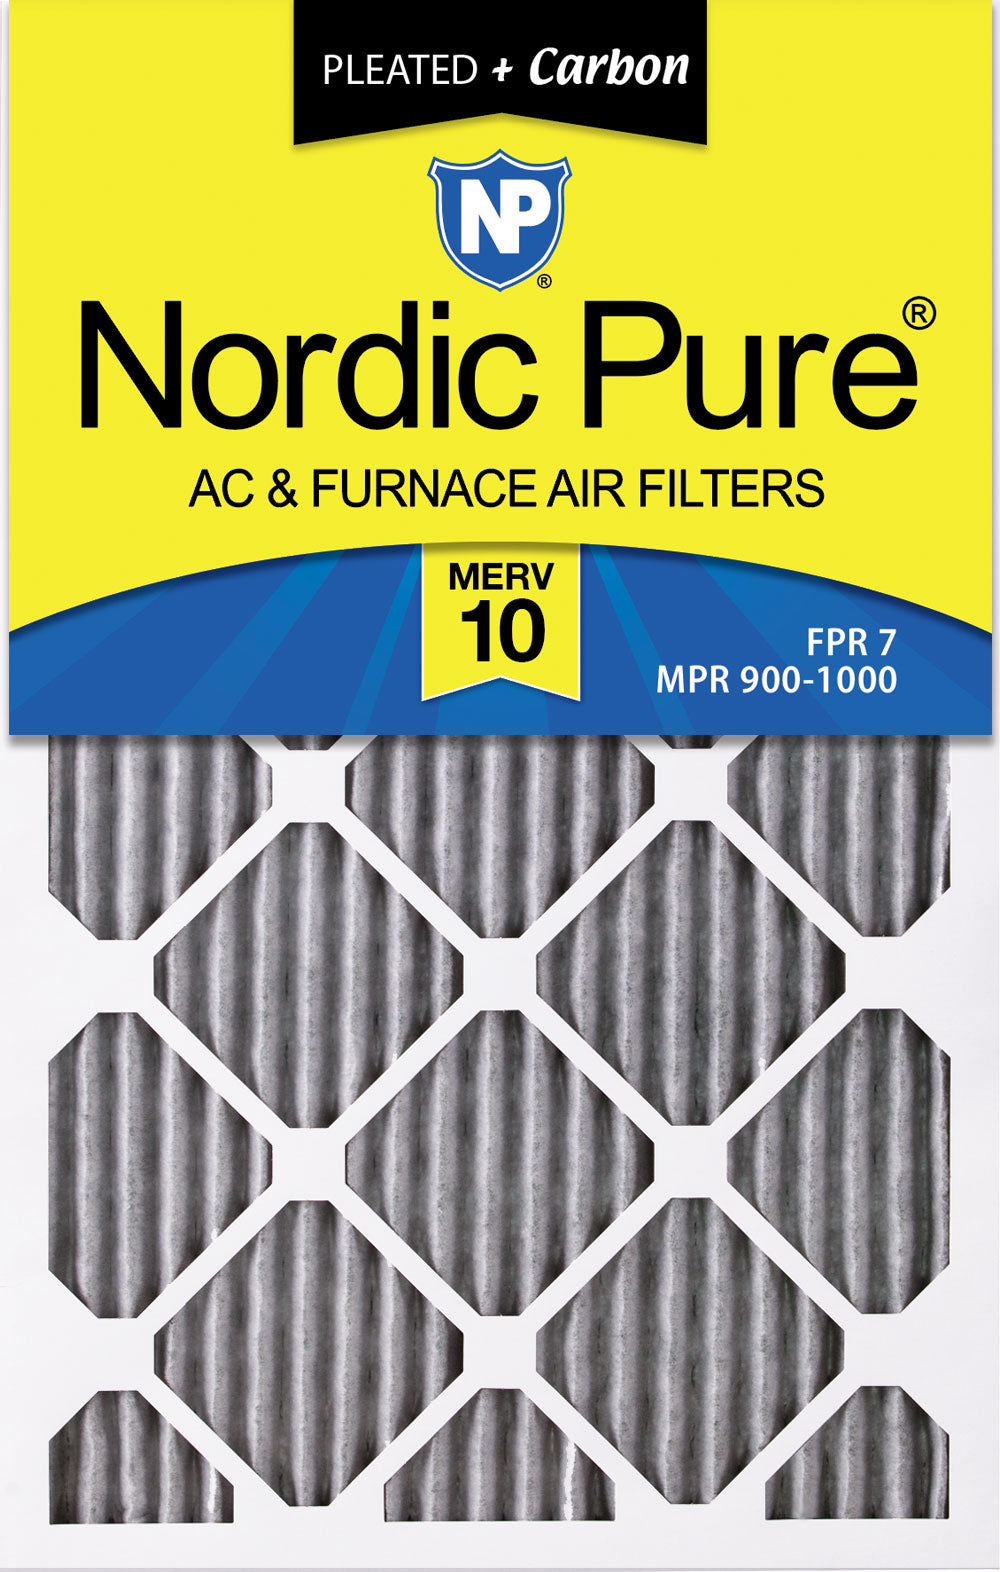 10x12x1 Exact MERV 10 Plus Carbon AC Furnace Filters 6 Pack